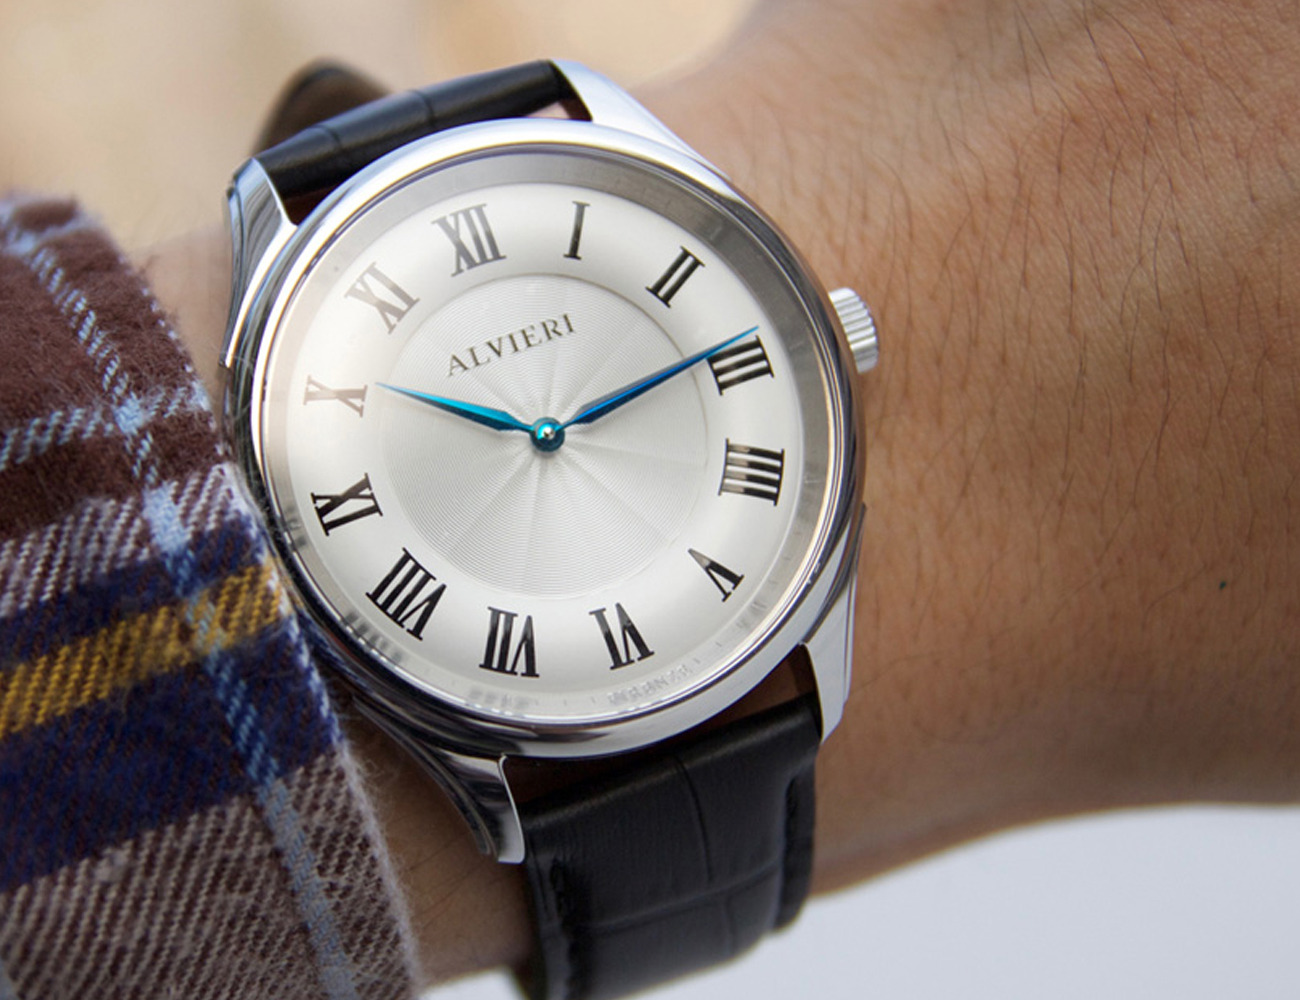 Alvieri+%26%238211%3B+Elegant+Watch+With+A+Really+Lively+Dial